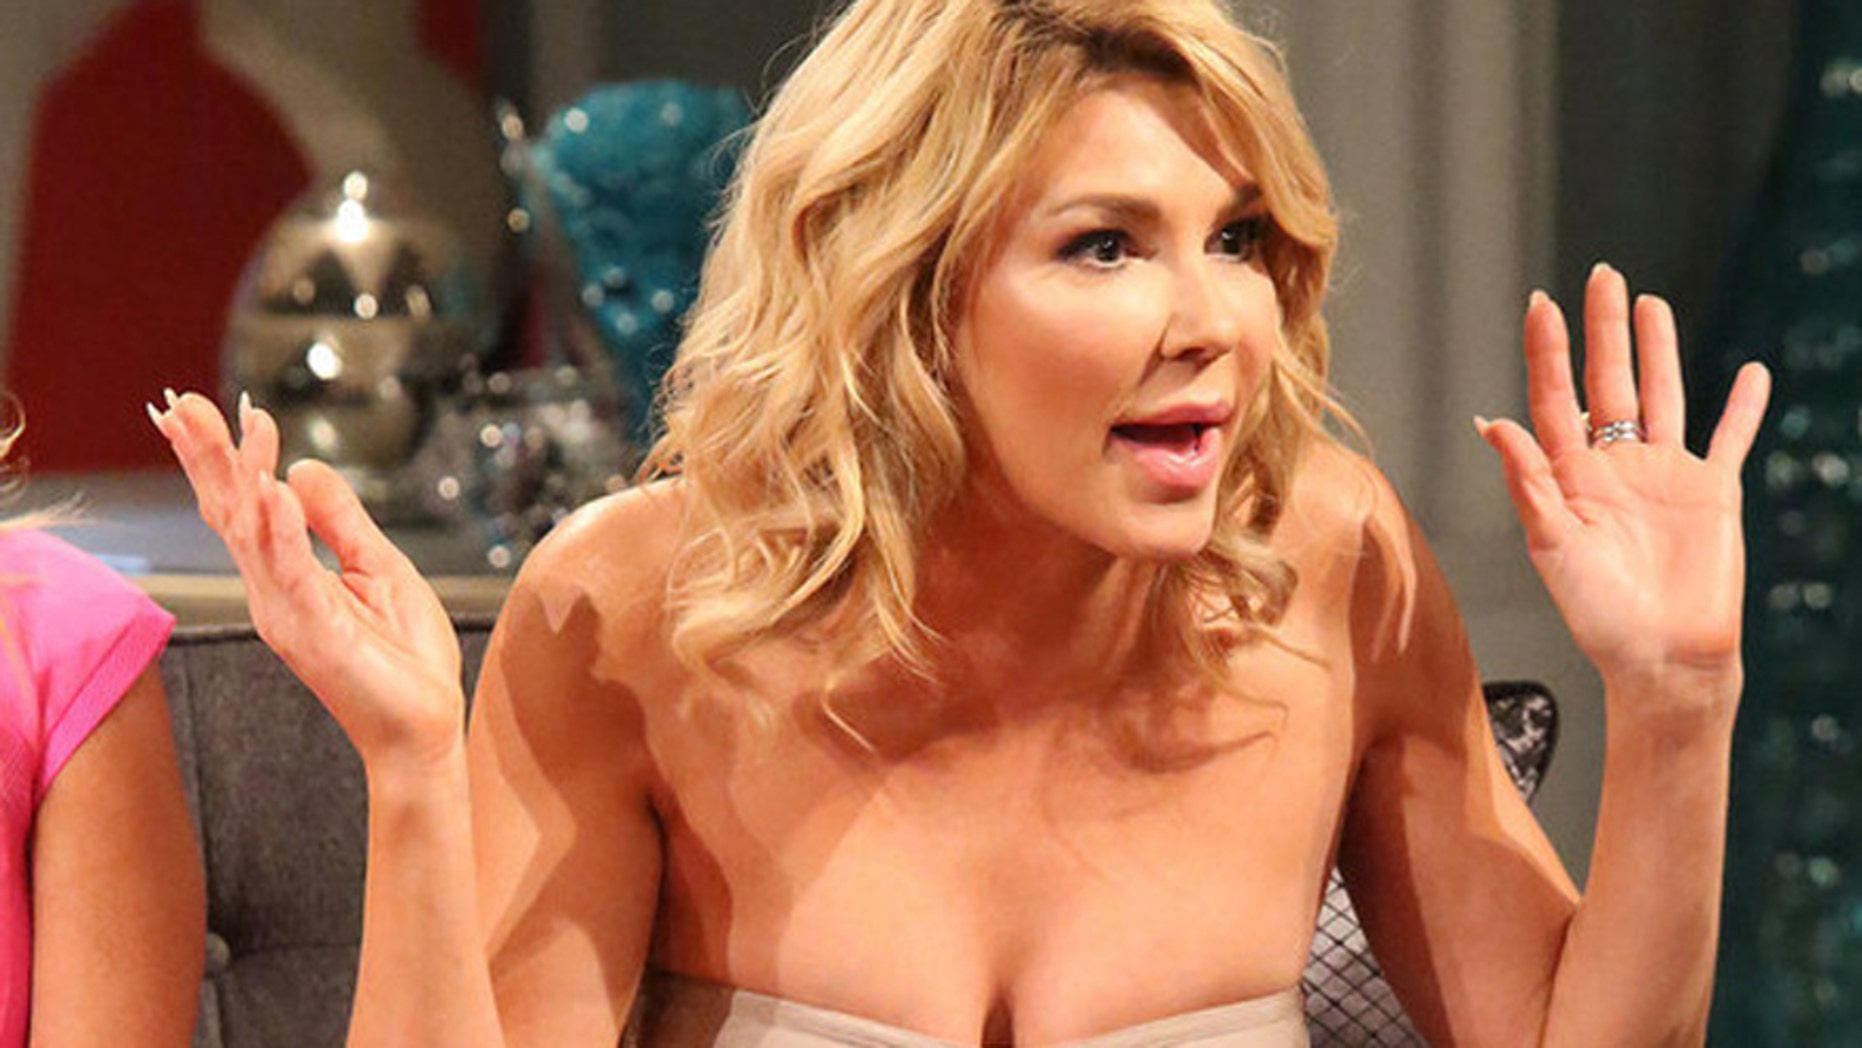 """Brandi Glanville on """"The Real Housewives of Beverly Hills"""" reunion. (Photo by: Evans Vestal Ward/Bravo)"""